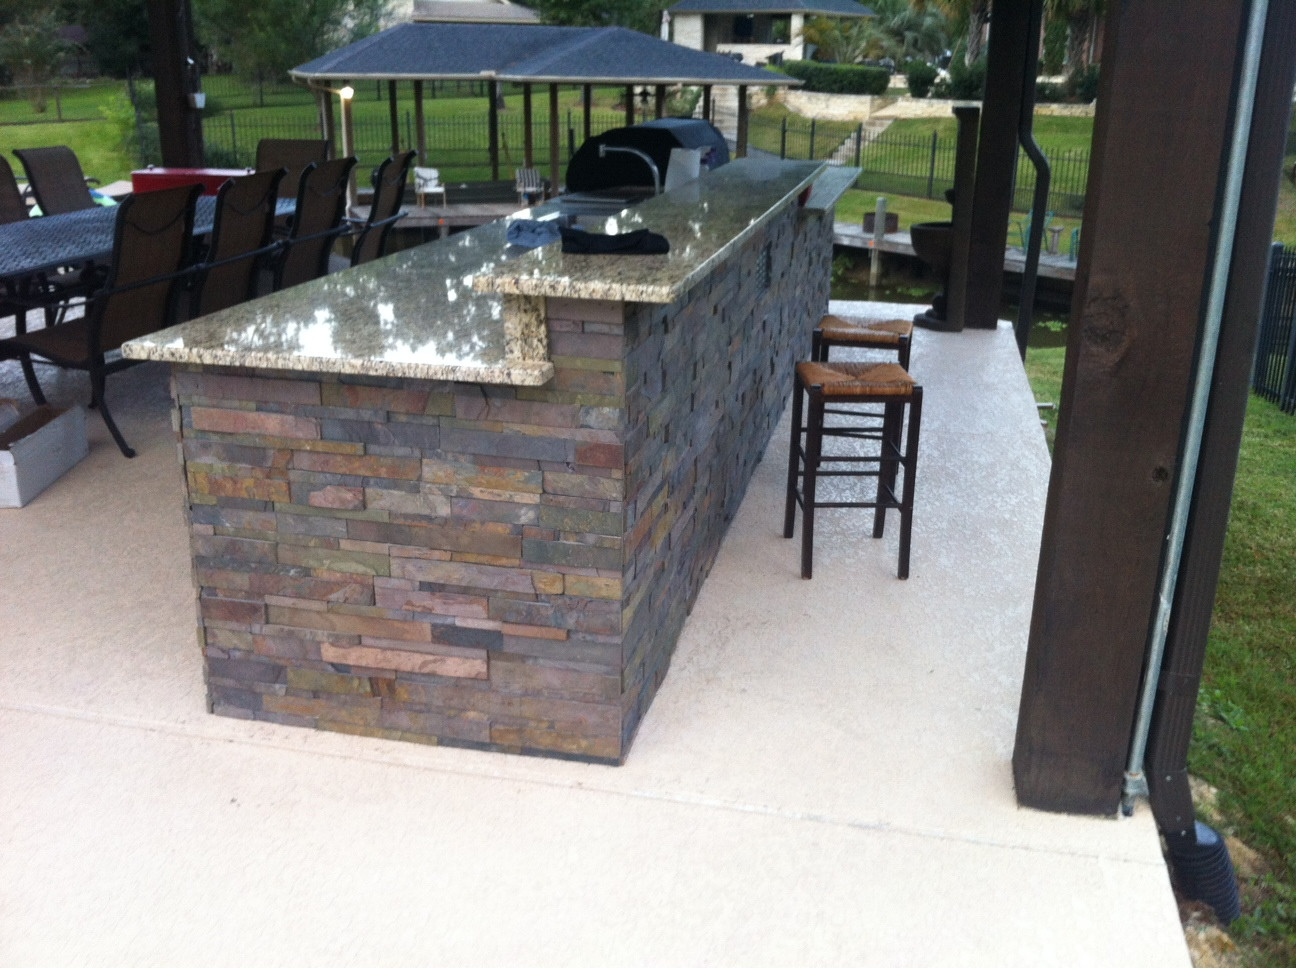 Best ideas about DIY Outdoor Kitchen Kits . Save or Pin Just about done with my outdoor kitchen DIY granite Now.